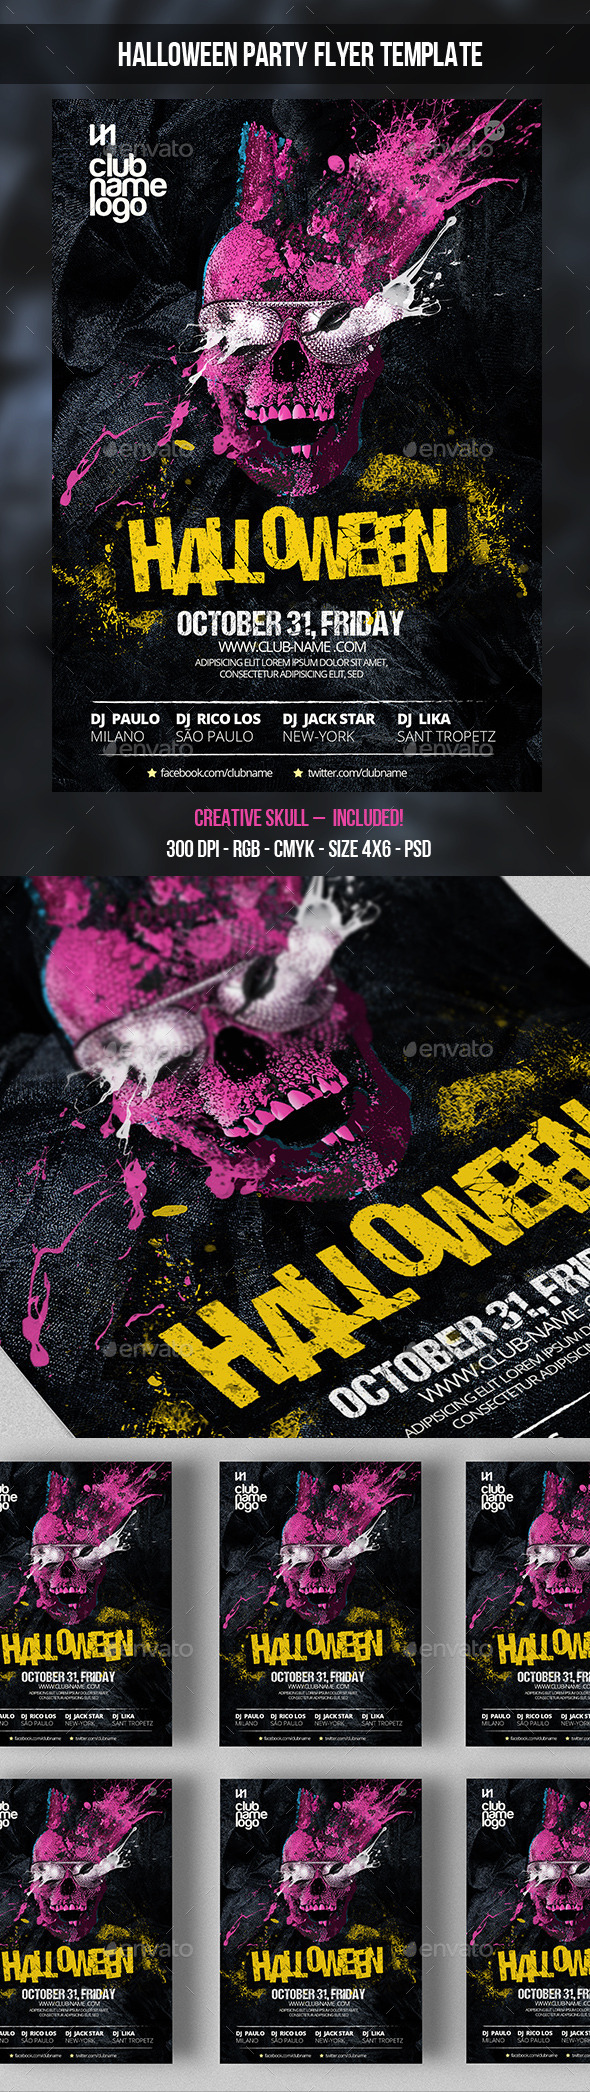 Halloween Party Flyer Template - Clubs & Parties Events